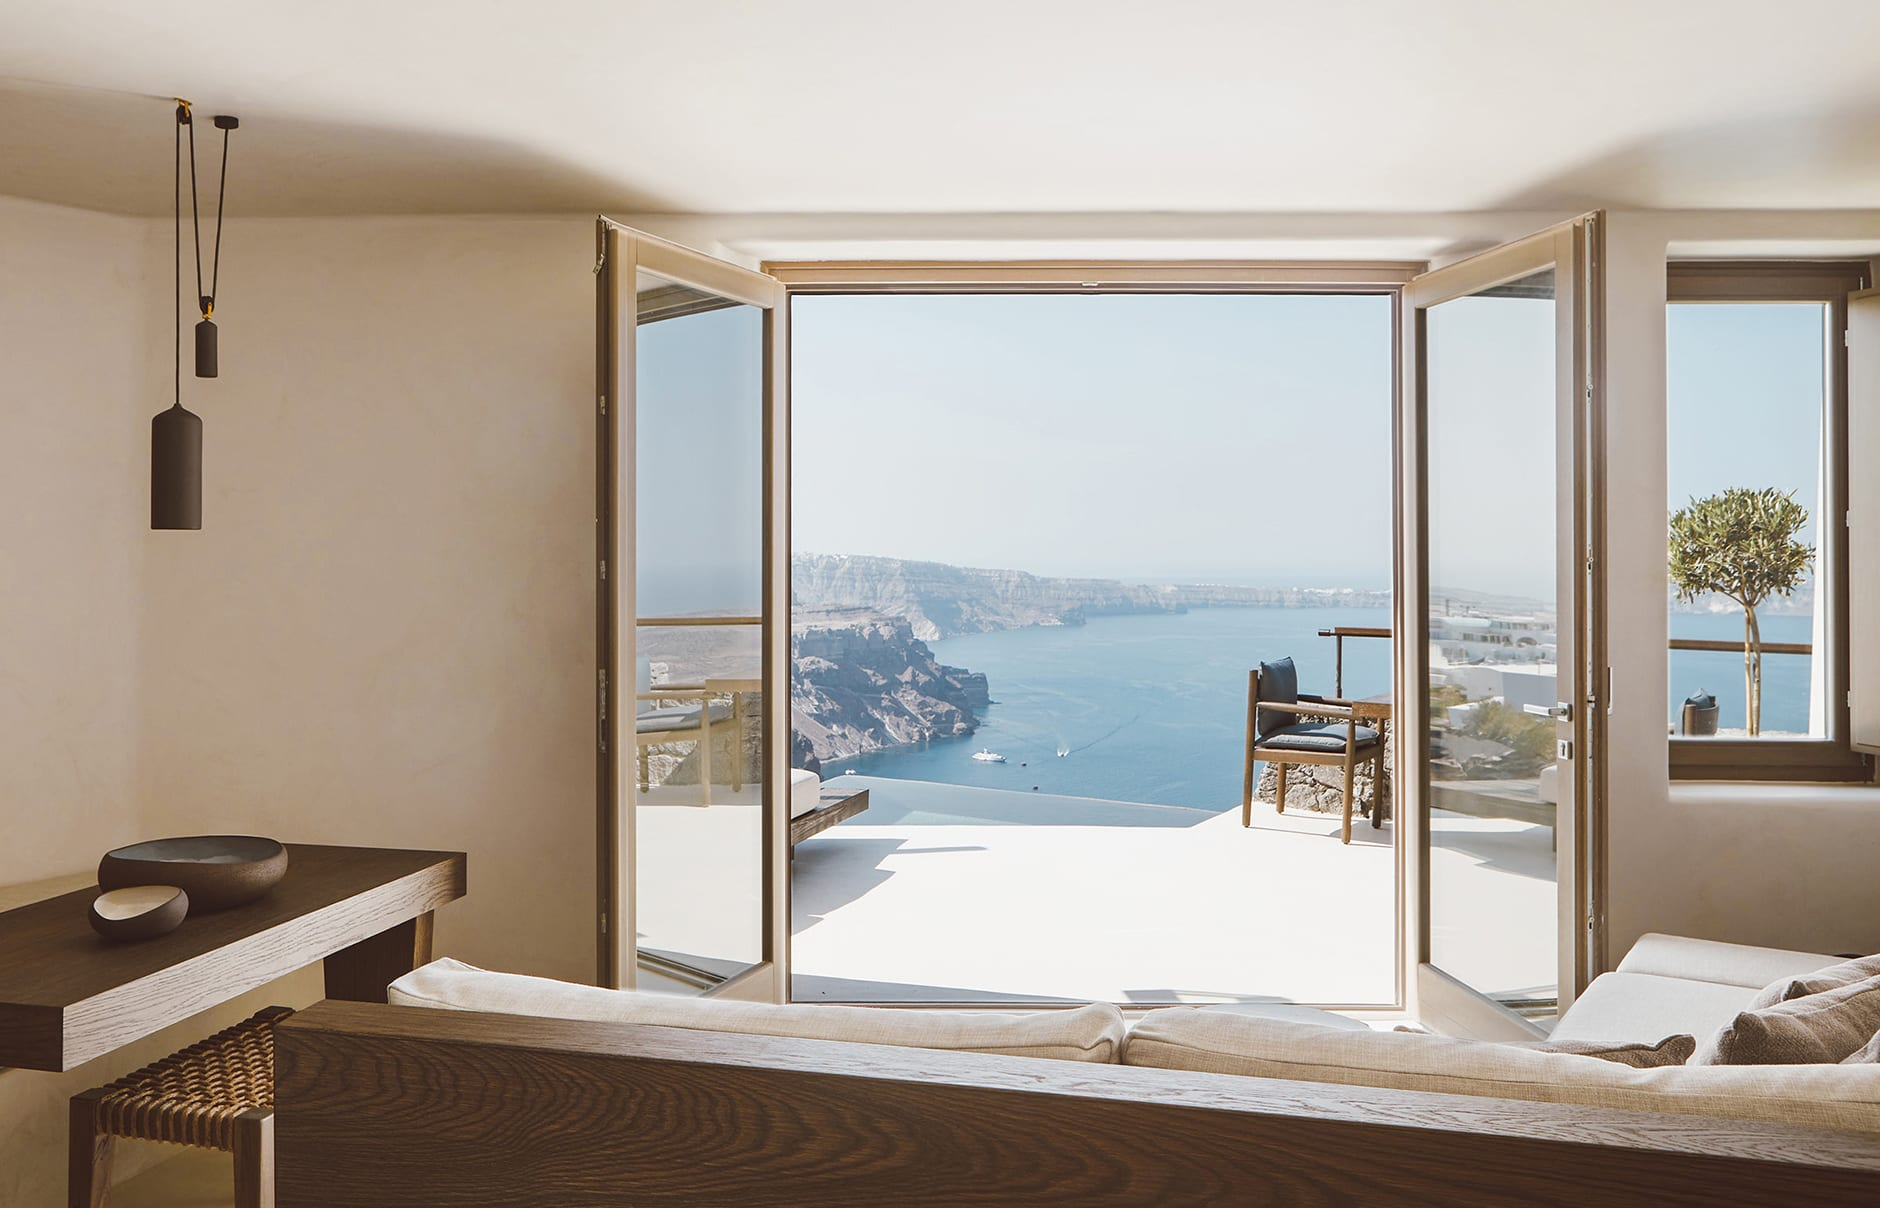 Vora Villas Santorini, Greece. Hotel Review by TravelPlusStyle. Photo © VORA